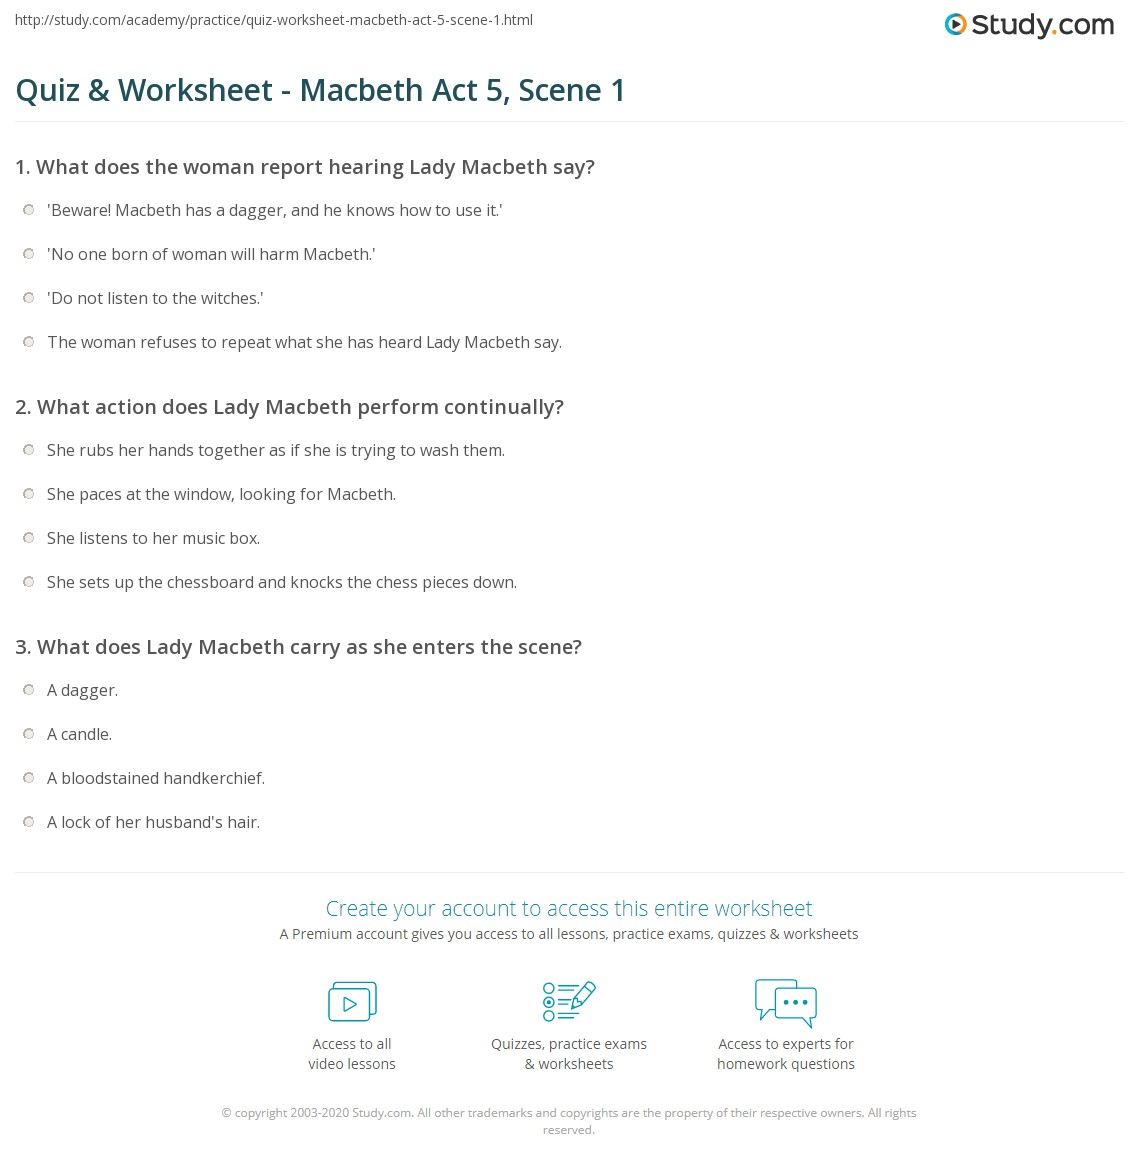 quiz worksheet macbeth act 5 scene 1 com print macbeth act 5 scene 1 summary quotes worksheet